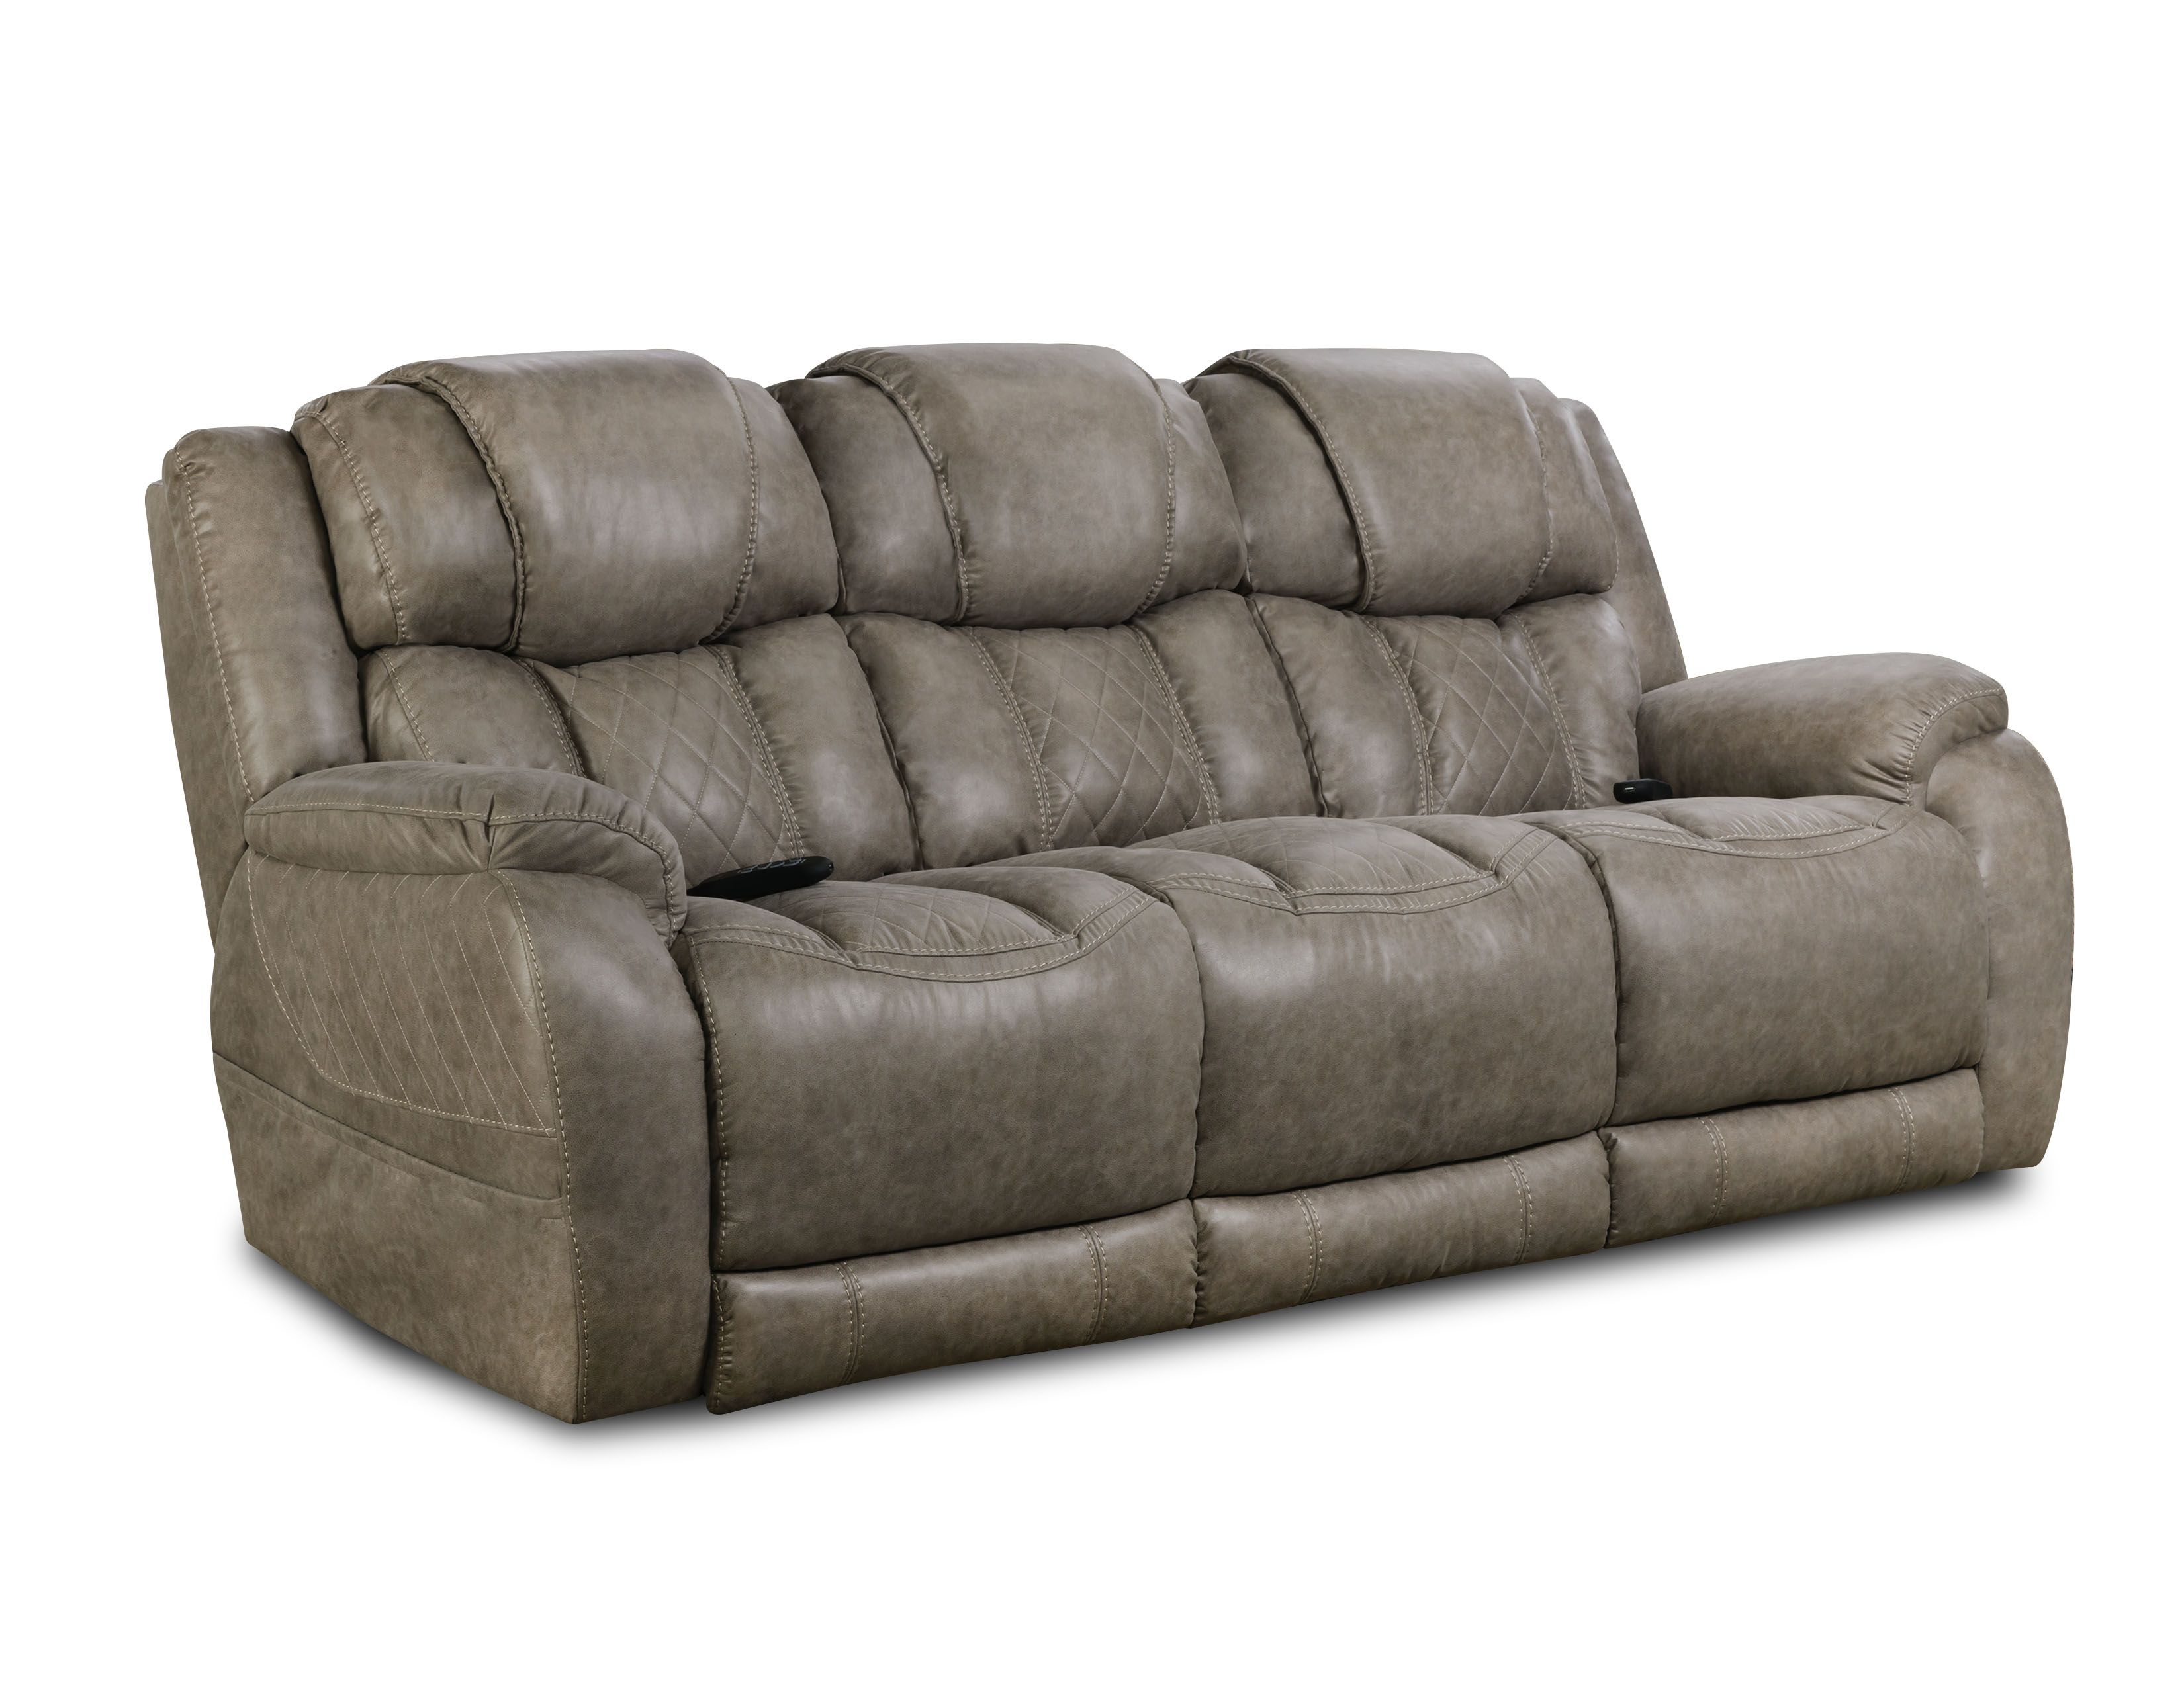 Double Reclining Power Sofa From Homestretch In 2020 Chelsea Home Furniture Reclining Sofa Furniture